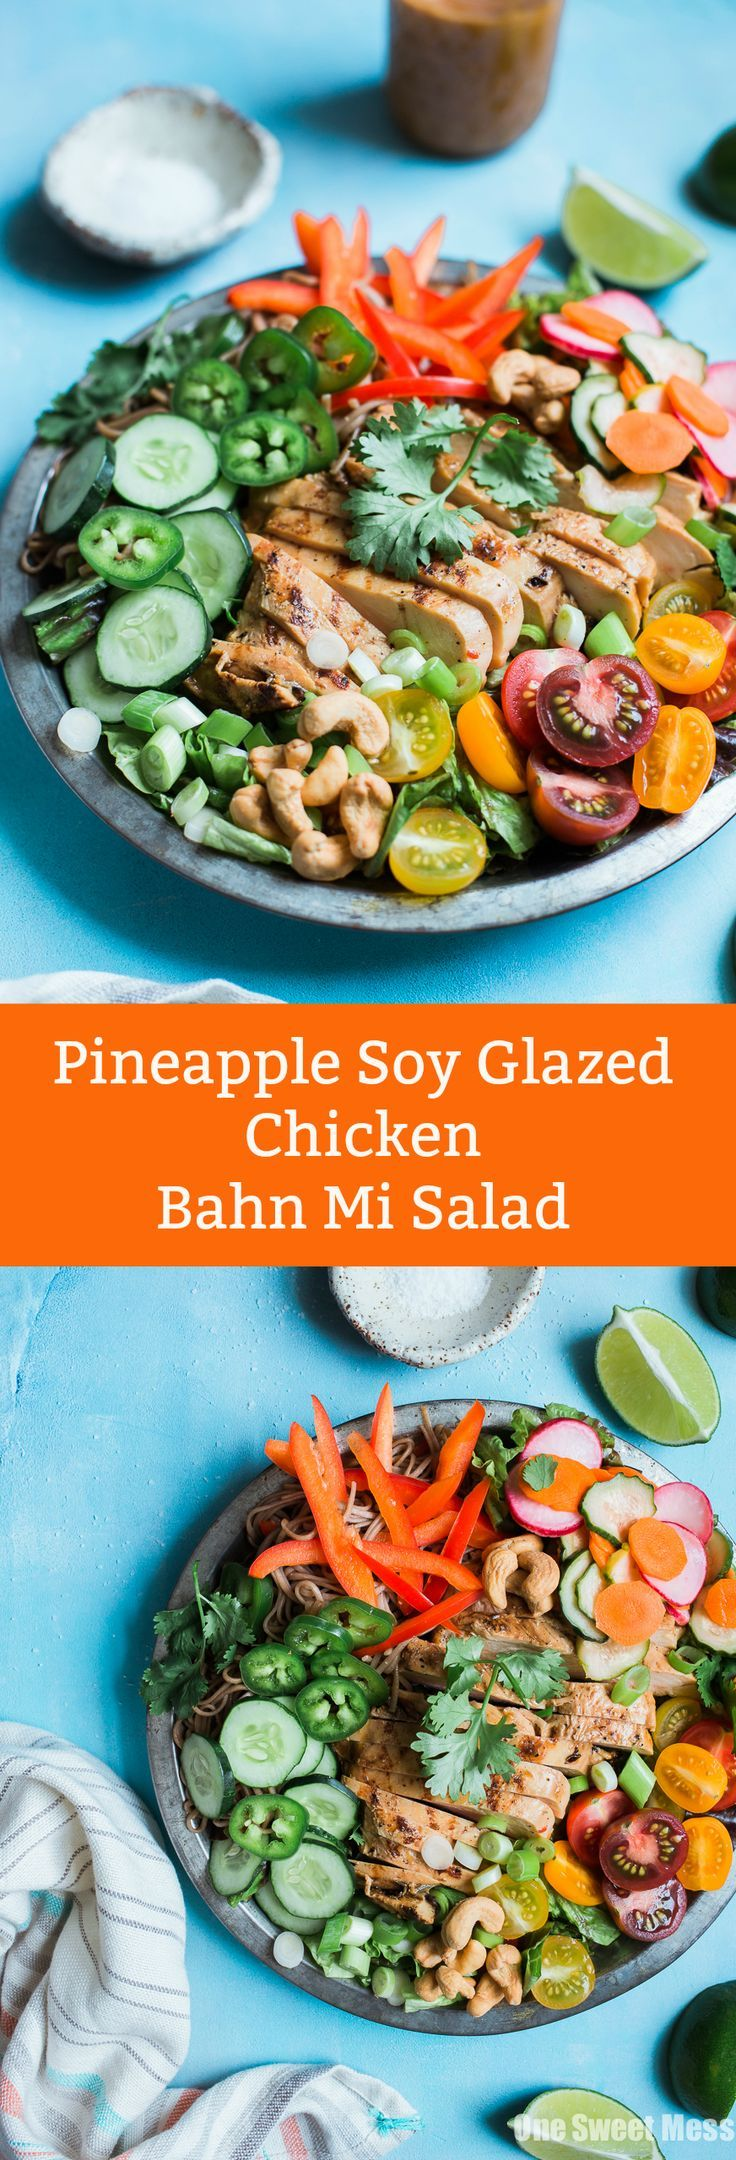 Pineapple Soy Glazed Chicken Bahn Mi Salad